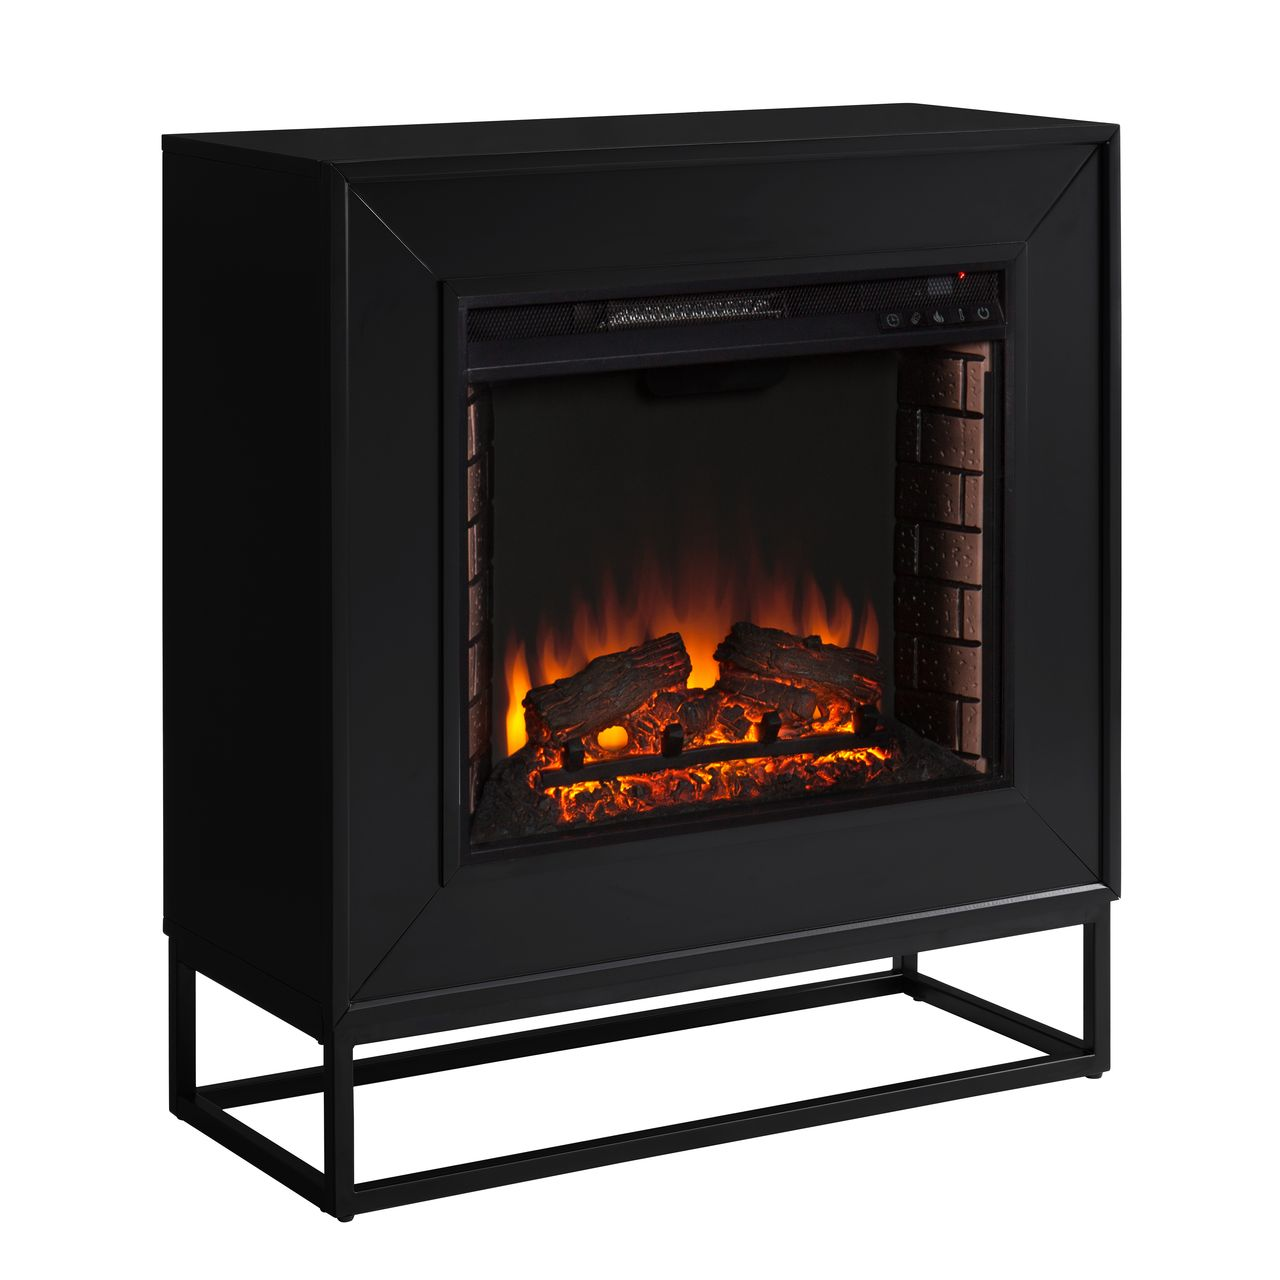 Holly & Martin Frescan FE1063059 Electric Fireplace in Black